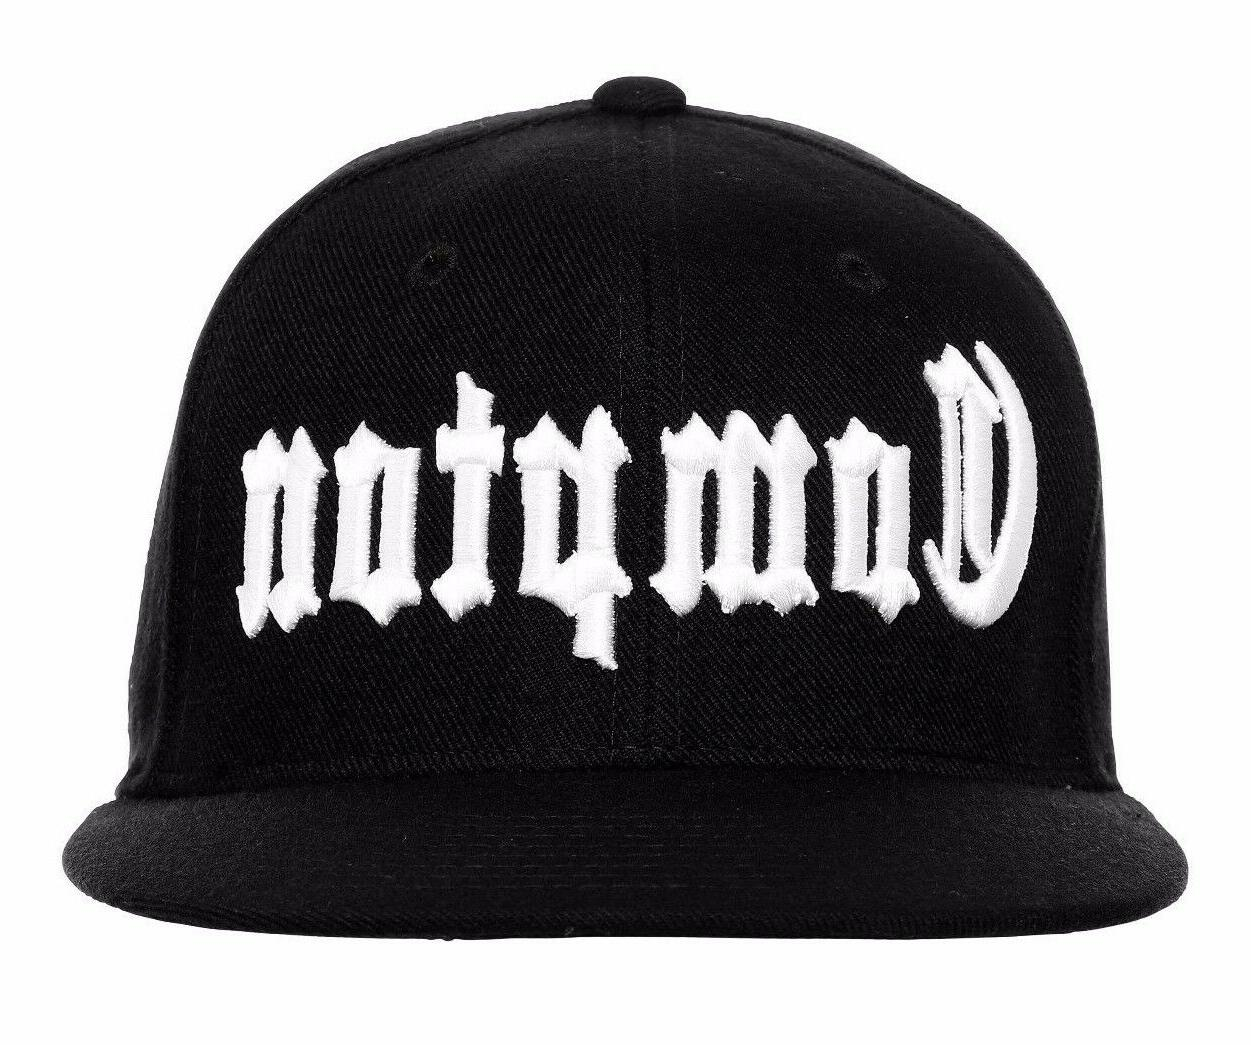 Black Compton Vintage Embroidered Hip Hop Fitted Flat Bill C